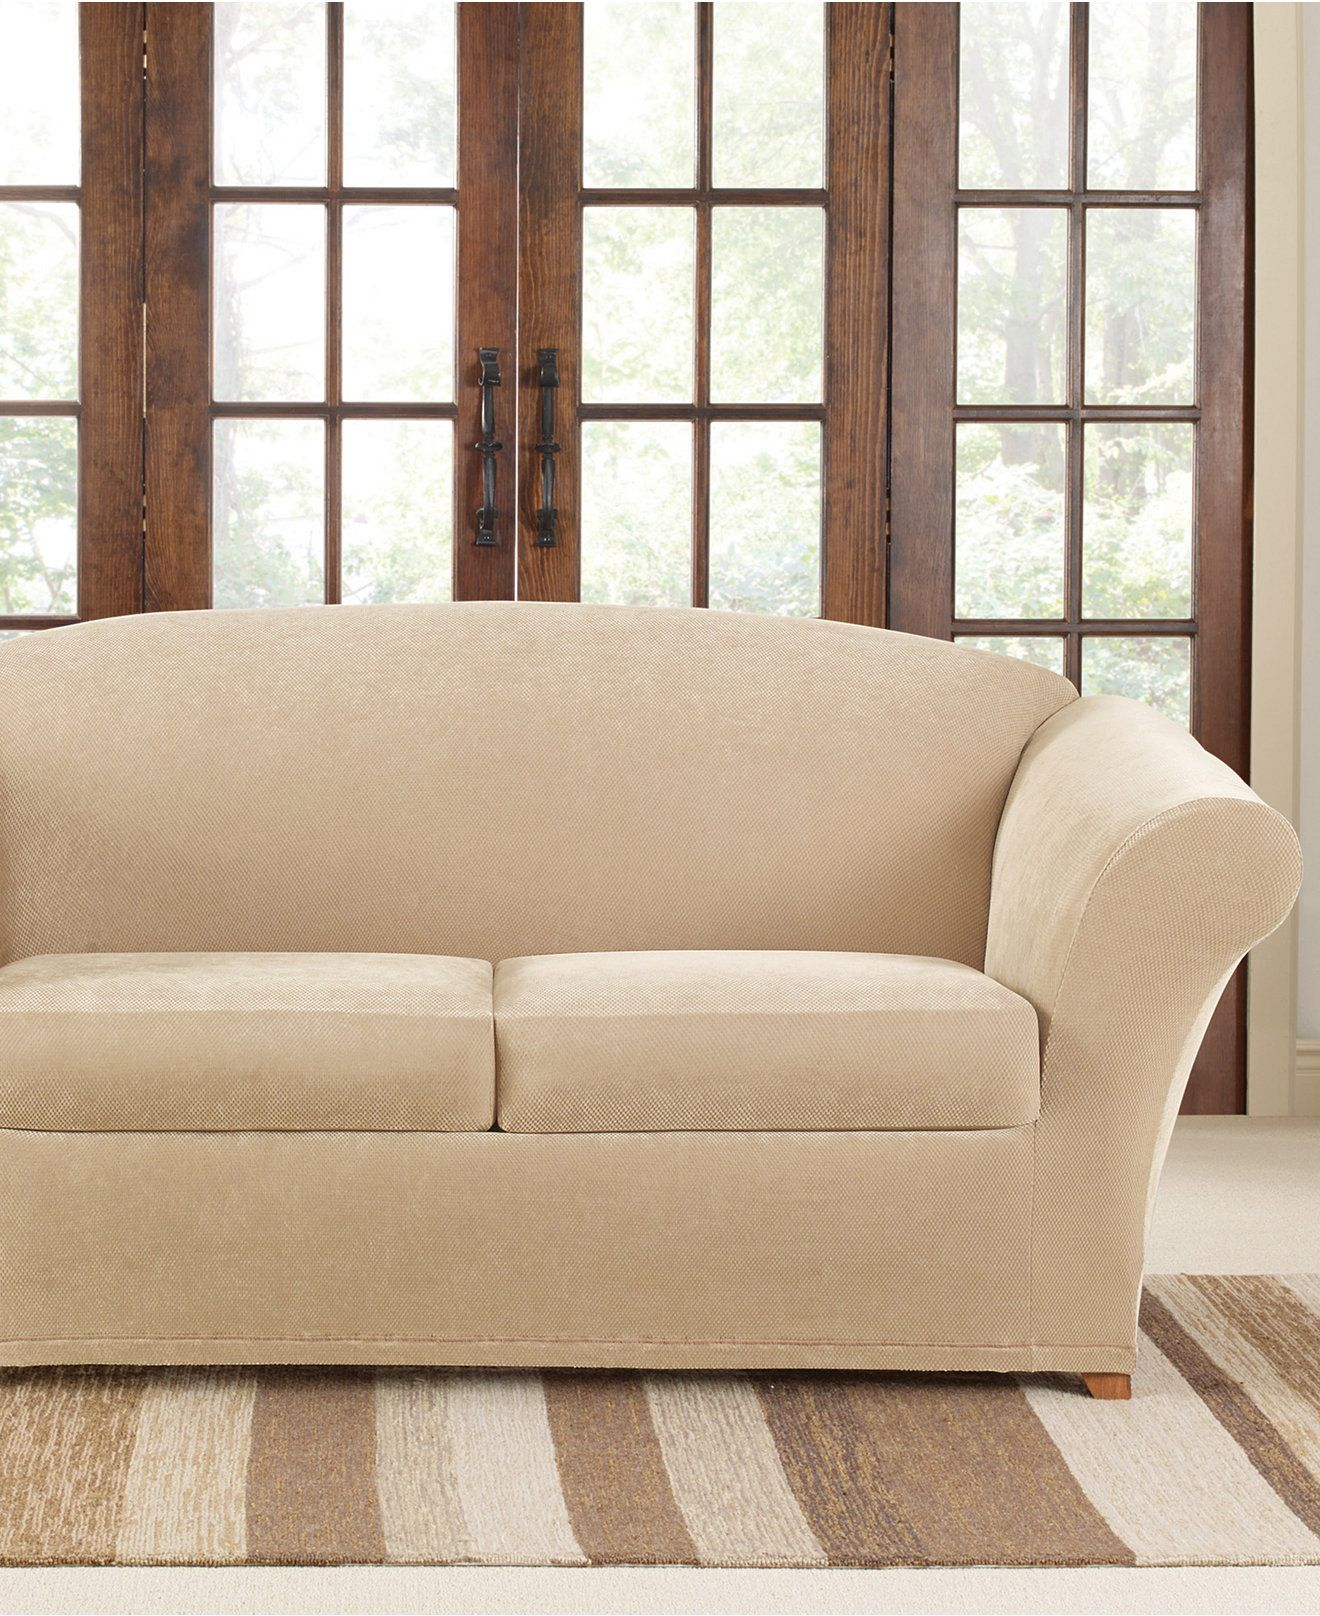 Sure Fit Stretch Pique 2 Cushion Loveseat Slipcover Reviews Slipcovers Home Decor Macy S Slipcovered Sofa Slipcovers Slipcovers For Chairs Slipcovers for loveseats with 2 cushions